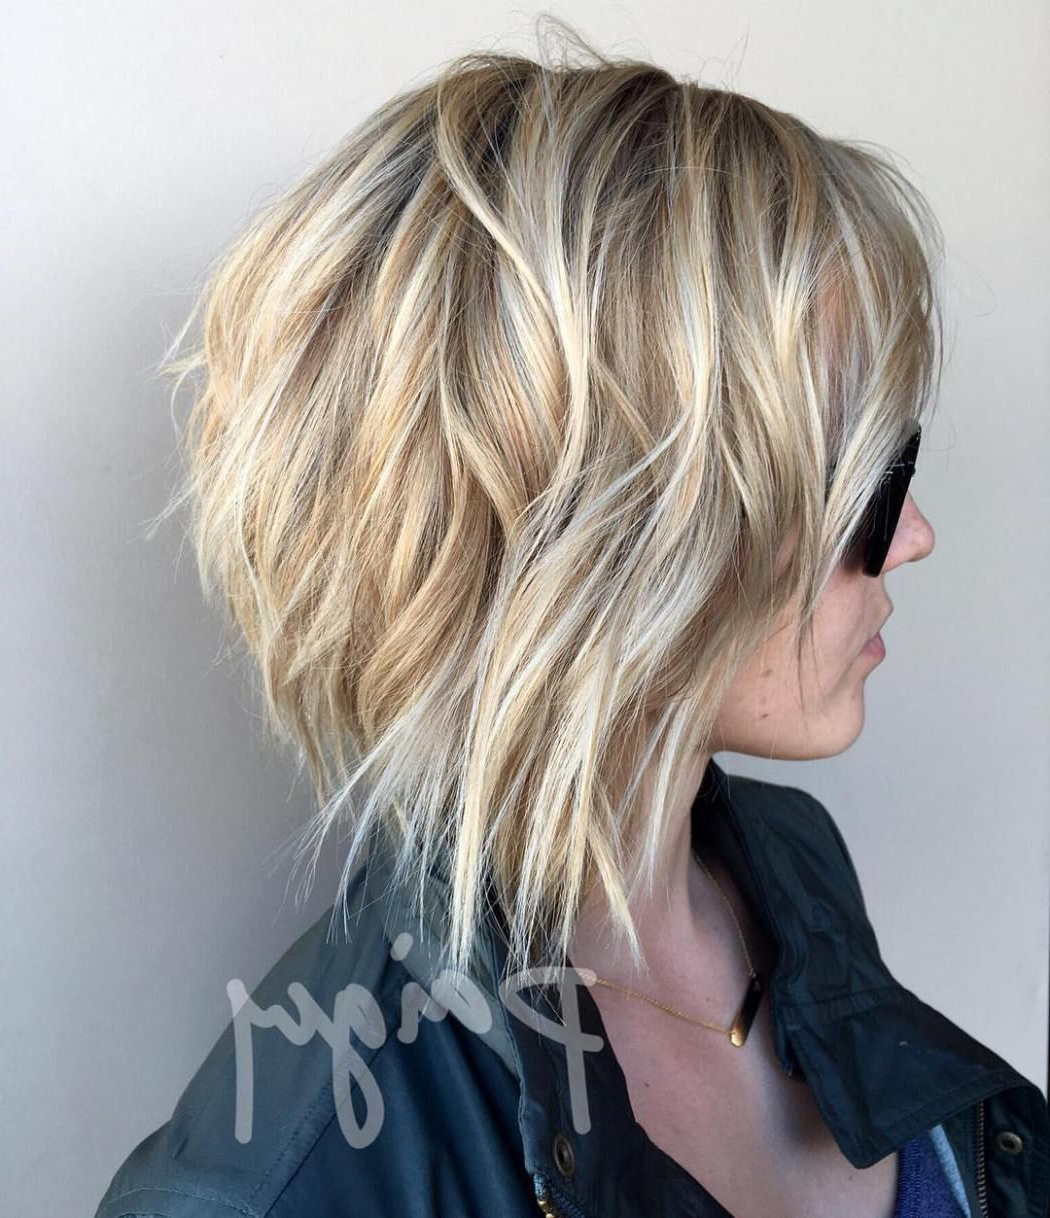 70 Fabulous Choppy Bob Hairstyles In 2018 | Hairstyles | Pinterest With Choppy Golden Blonde Balayage Bob Hairstyles (Gallery 3 of 20)